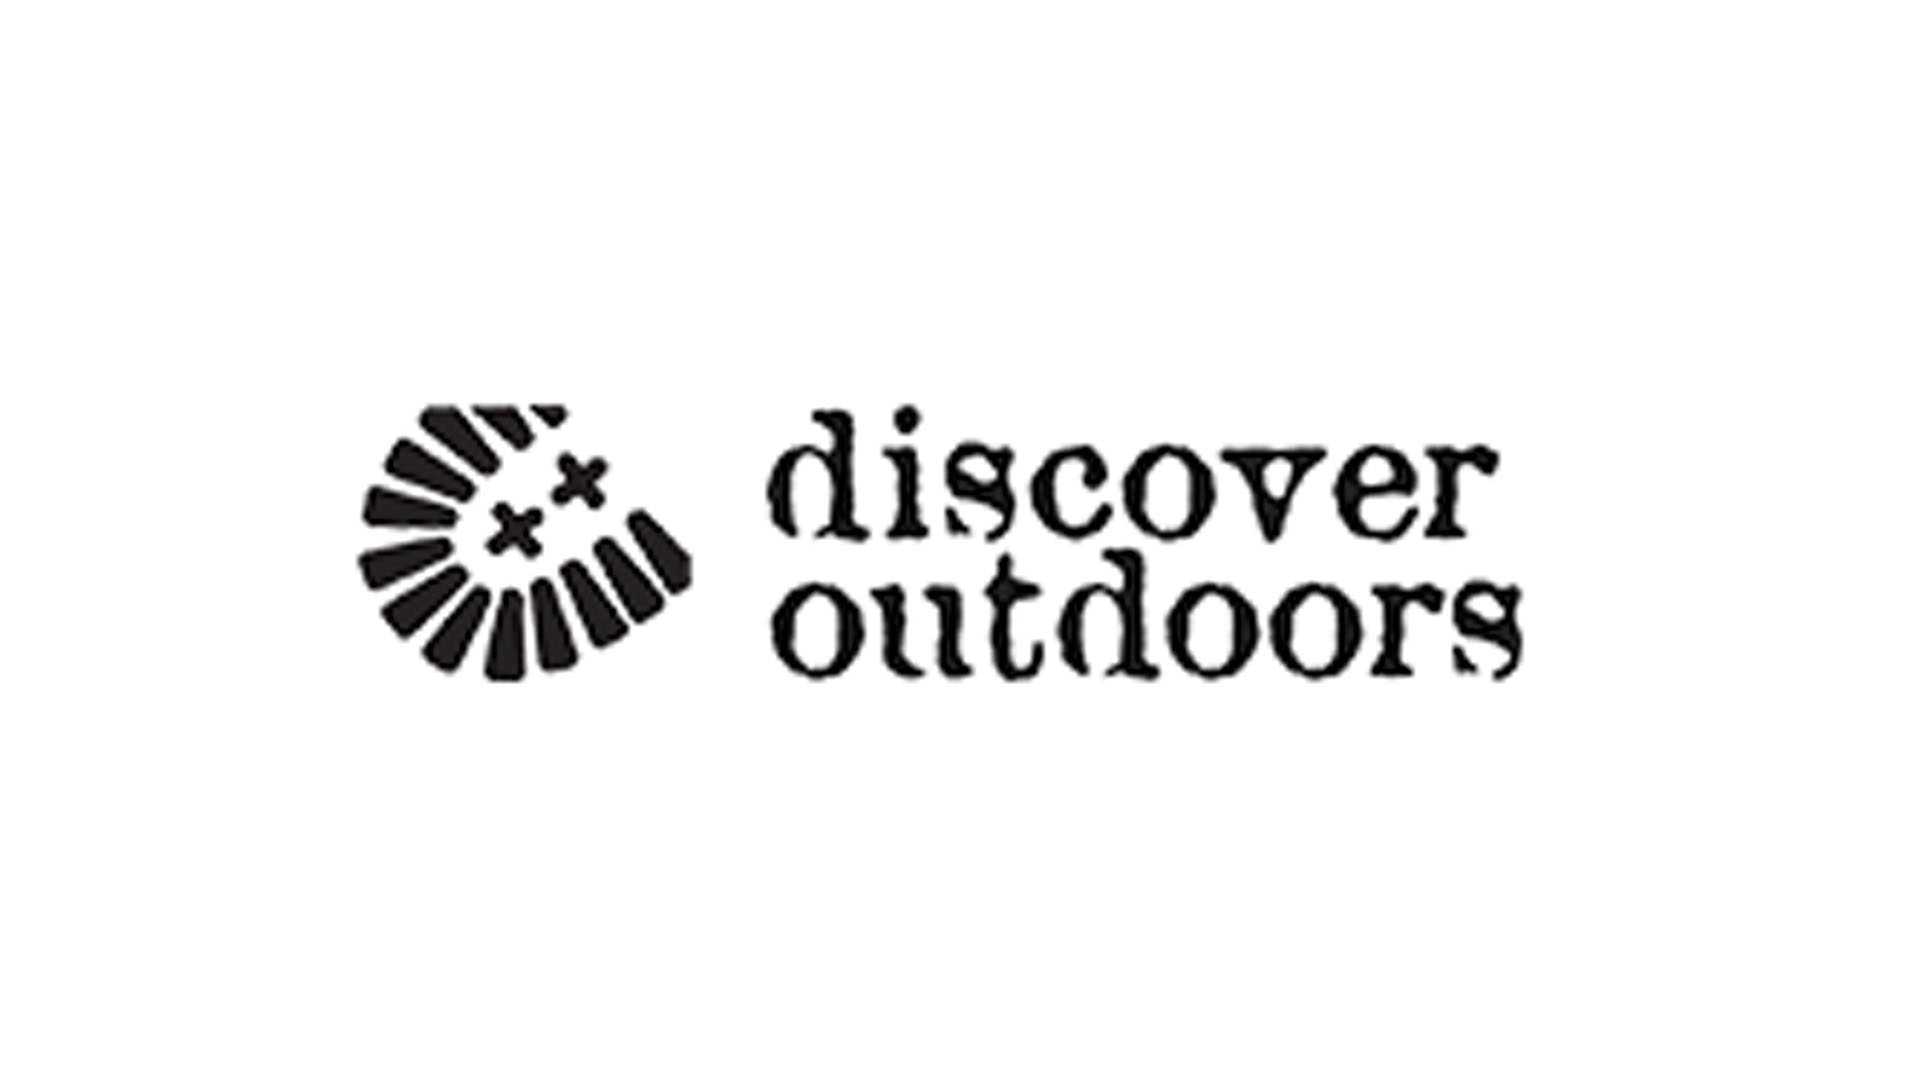 Discover Outdoors. Shop selling Scout and Guide products, plus outdoor clothing, footwear and camping equipment.